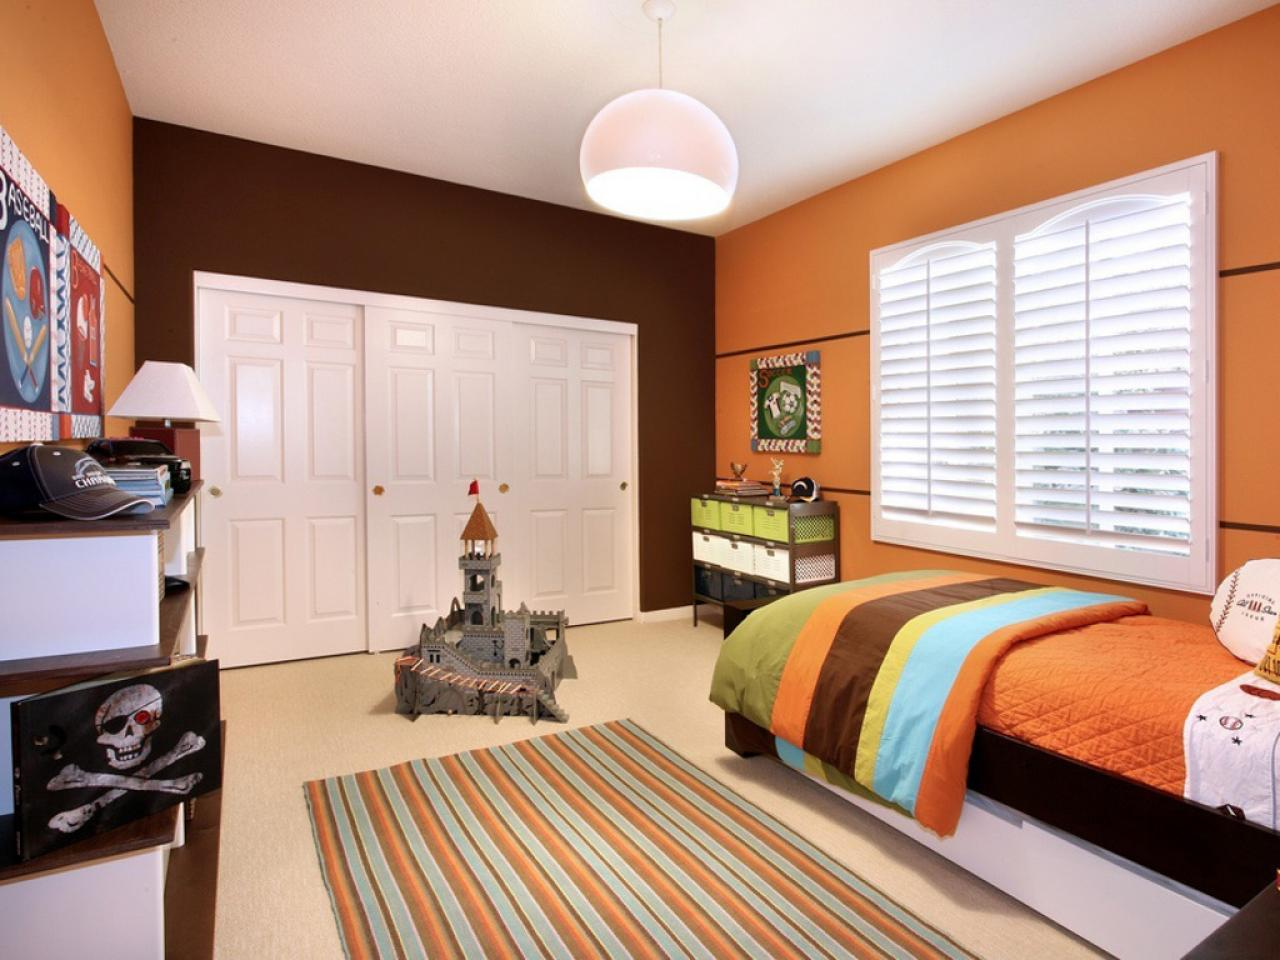 Bedroom paint color ideas pictures options hgtv for Bedroom designs and colors